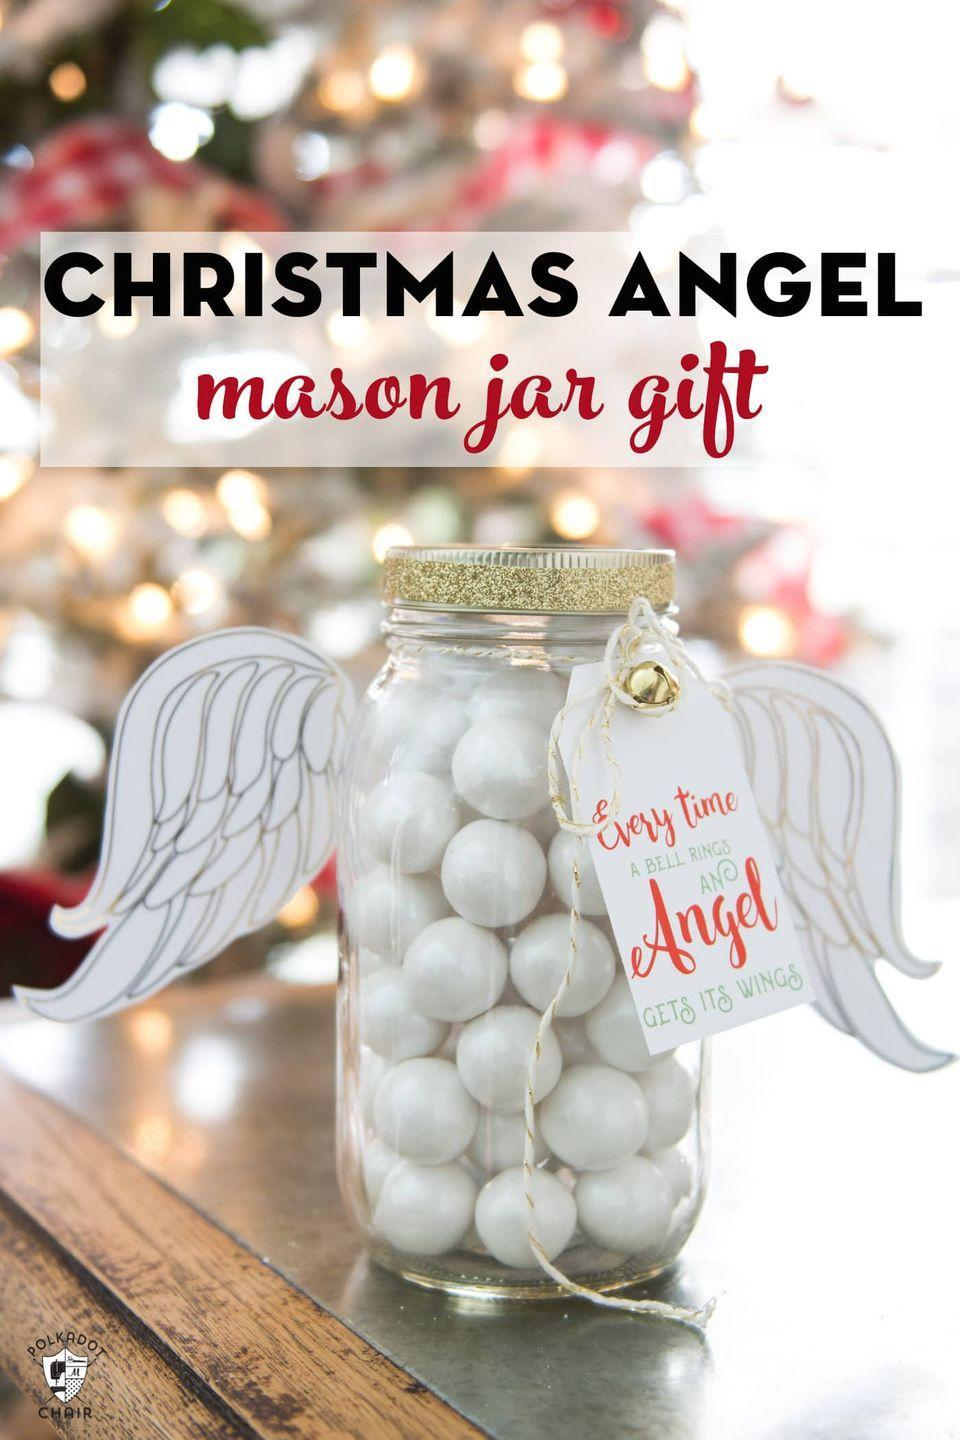 """<p>Give a nod to one of the best <a href=""""https://www.countryliving.com/life/entertainment/g3855/best-black-and-white-classic-christmas-movies/"""" rel=""""nofollow noopener"""" target=""""_blank"""" data-ylk=""""slk:classic Christmas movies"""" class=""""link rapid-noclick-resp"""">classic Christmas movies</a> with this angel Mason jar. Fill it with sweets or just use it as a decoration!</p><p><strong>Get the tutorial at <a href=""""https://www.polkadotchair.com/angel-christmas-mason-jar-gifts/"""" rel=""""nofollow noopener"""" target=""""_blank"""" data-ylk=""""slk:Polka Dot Chair"""" class=""""link rapid-noclick-resp"""">Polka Dot Chair</a>.</strong></p><p><strong><a class=""""link rapid-noclick-resp"""" href=""""https://www.amazon.com/Gejoy-Metallic-Crafters-Wrapping-Decorations/dp/B07DDCYSFN/ref=sr_1_2_sspa?tag=syn-yahoo-20&ascsubtag=%5Bartid%7C10050.g.2132%5Bsrc%7Cyahoo-us"""" rel=""""nofollow noopener"""" target=""""_blank"""" data-ylk=""""slk:SHOP GOLD RIBBON"""">SHOP GOLD RIBBON</a><br></strong></p>"""